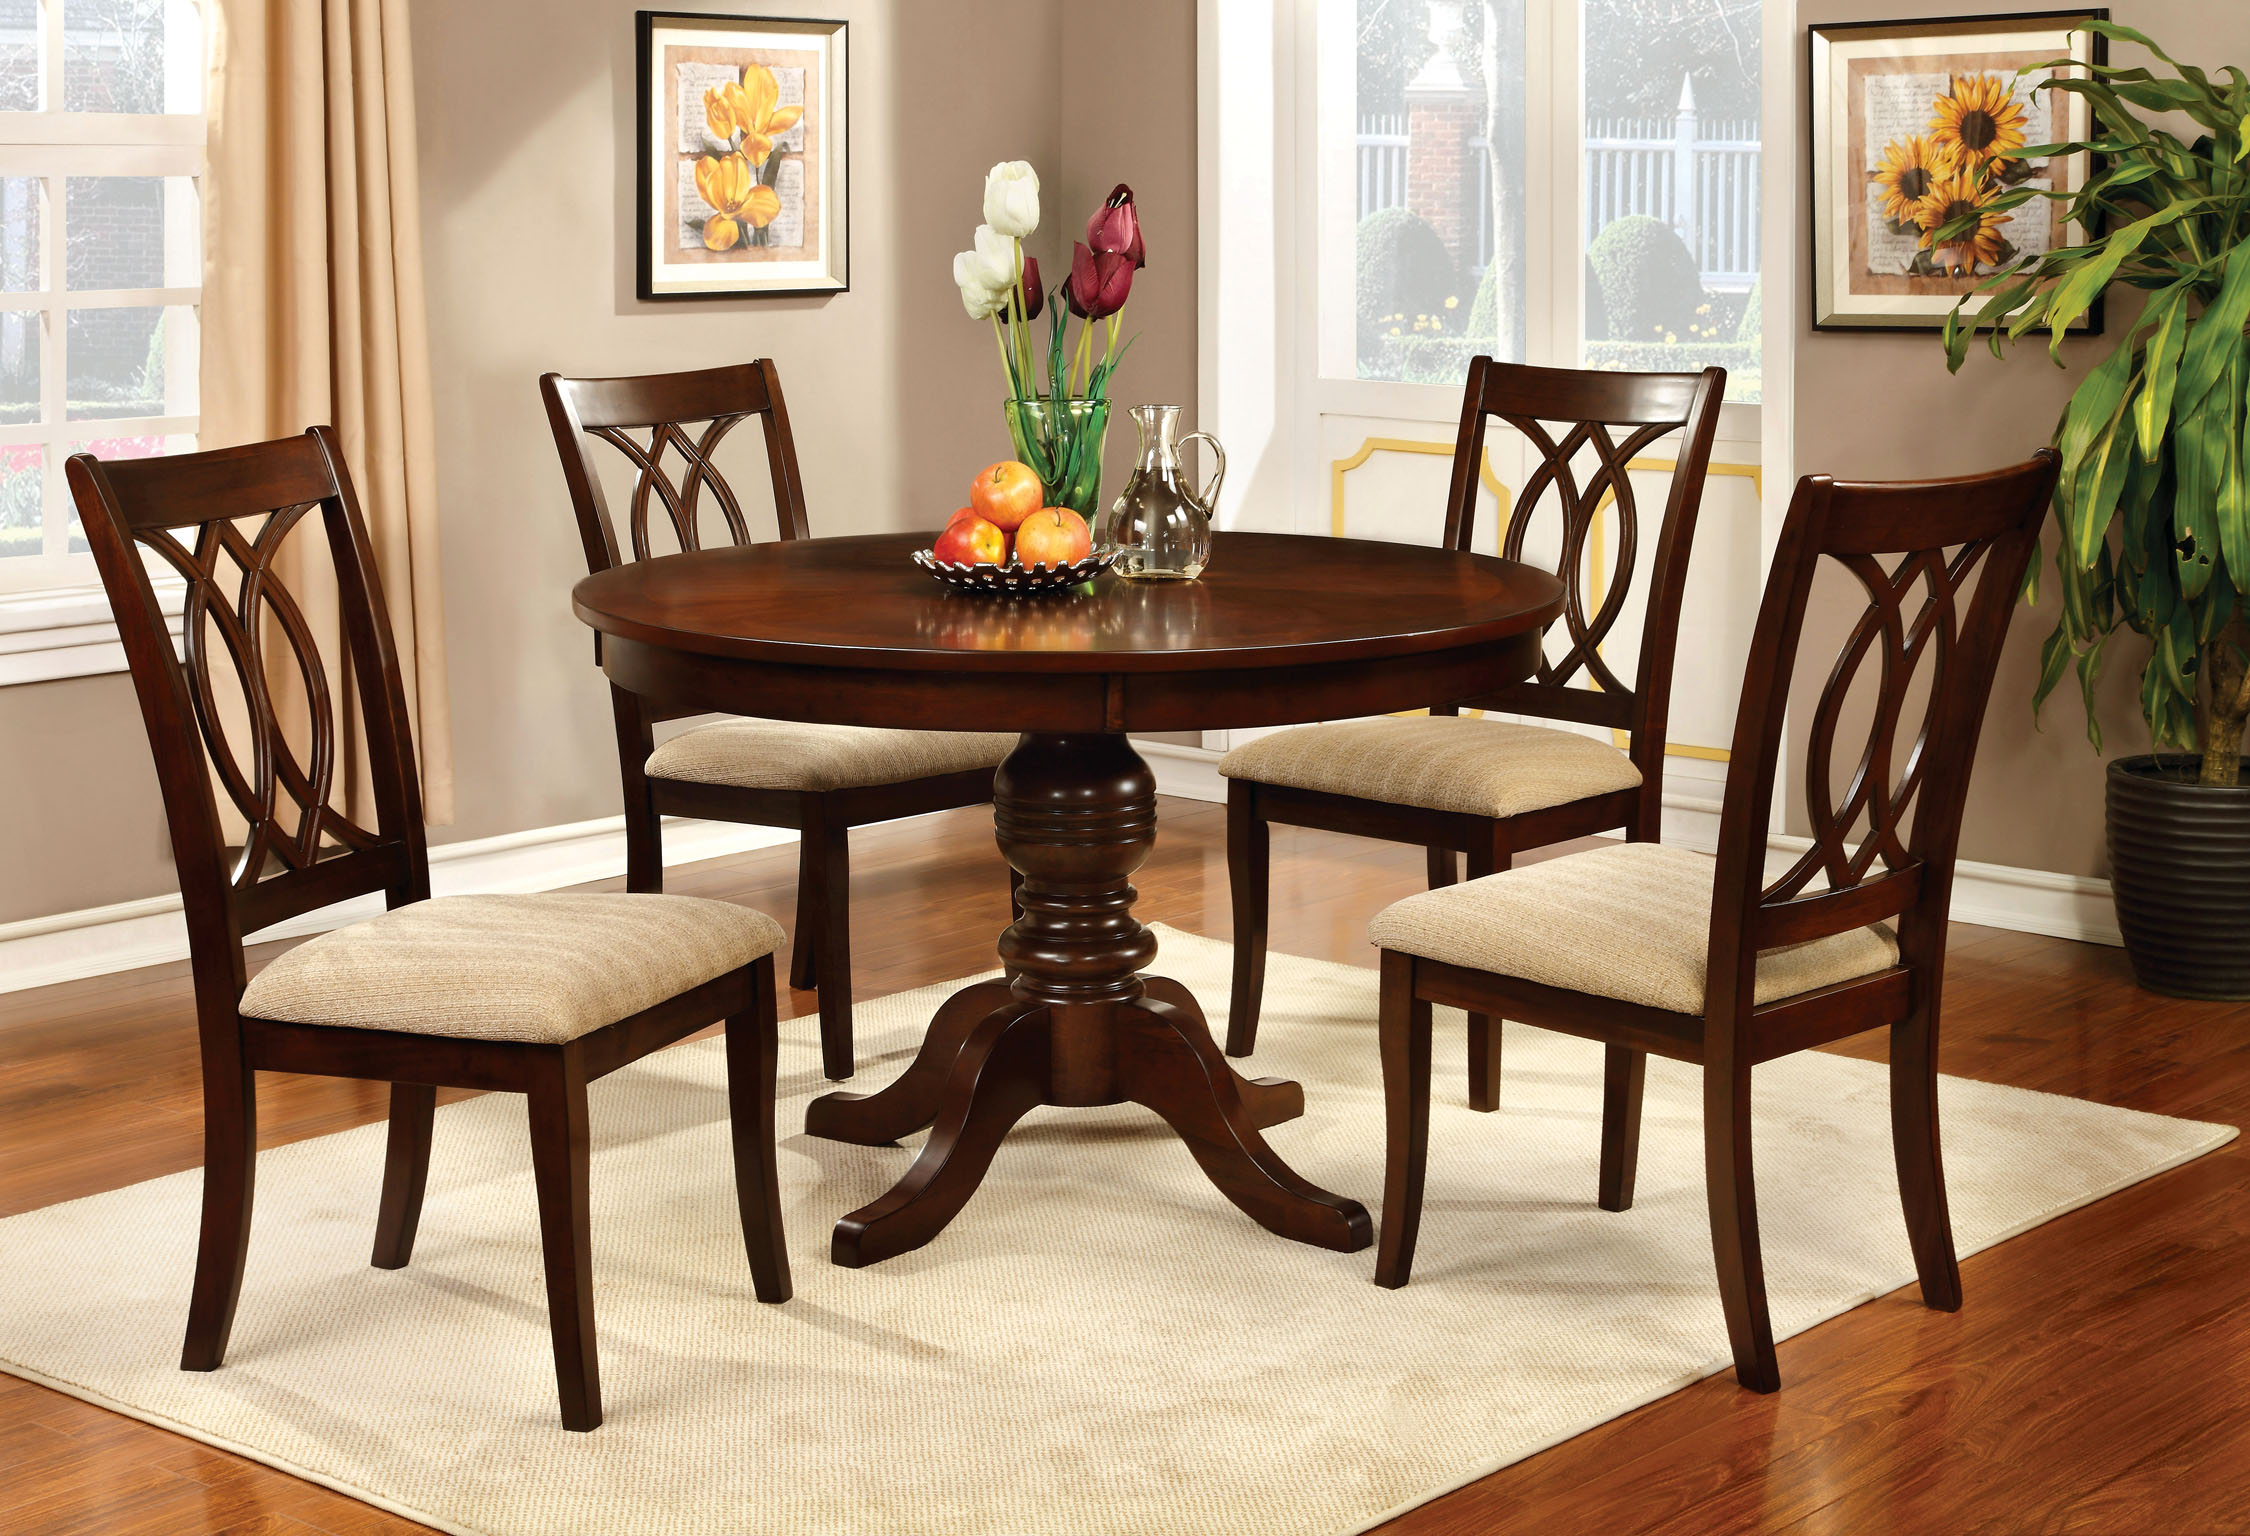 p P wayfair kitchen chairs Furniture of America Brennan 5 Piece Round Brown Cherry Dining Set Home Furniture Dining Kitchen Furniture Dining Sets Collections